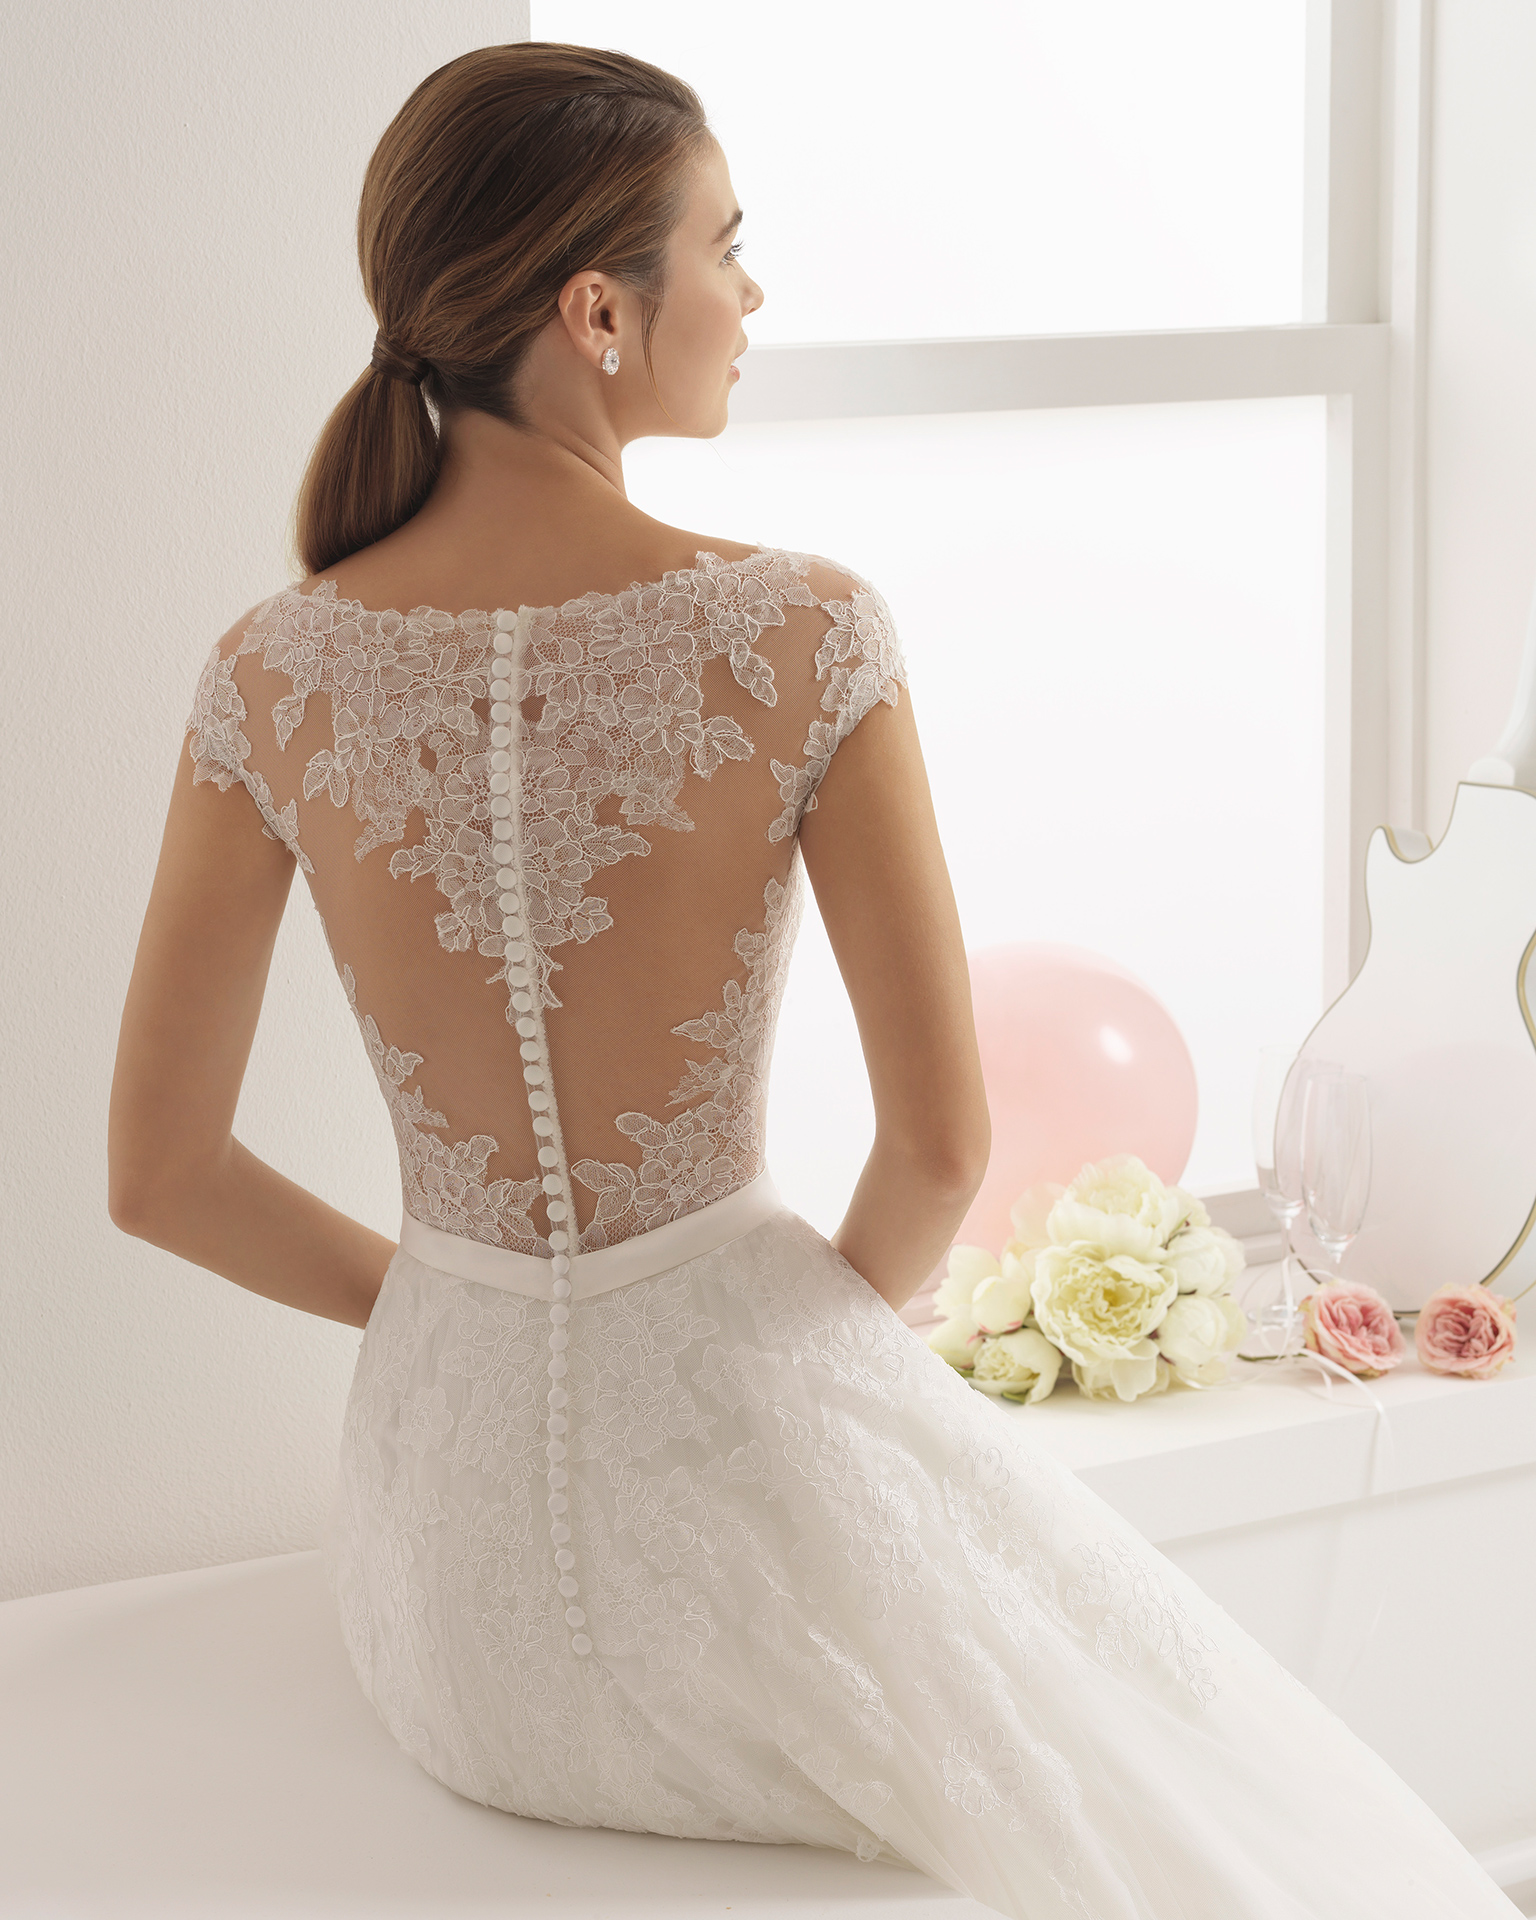 Romantic-style lace wedding dress with illusion neckline and lace back with lace appliqués.